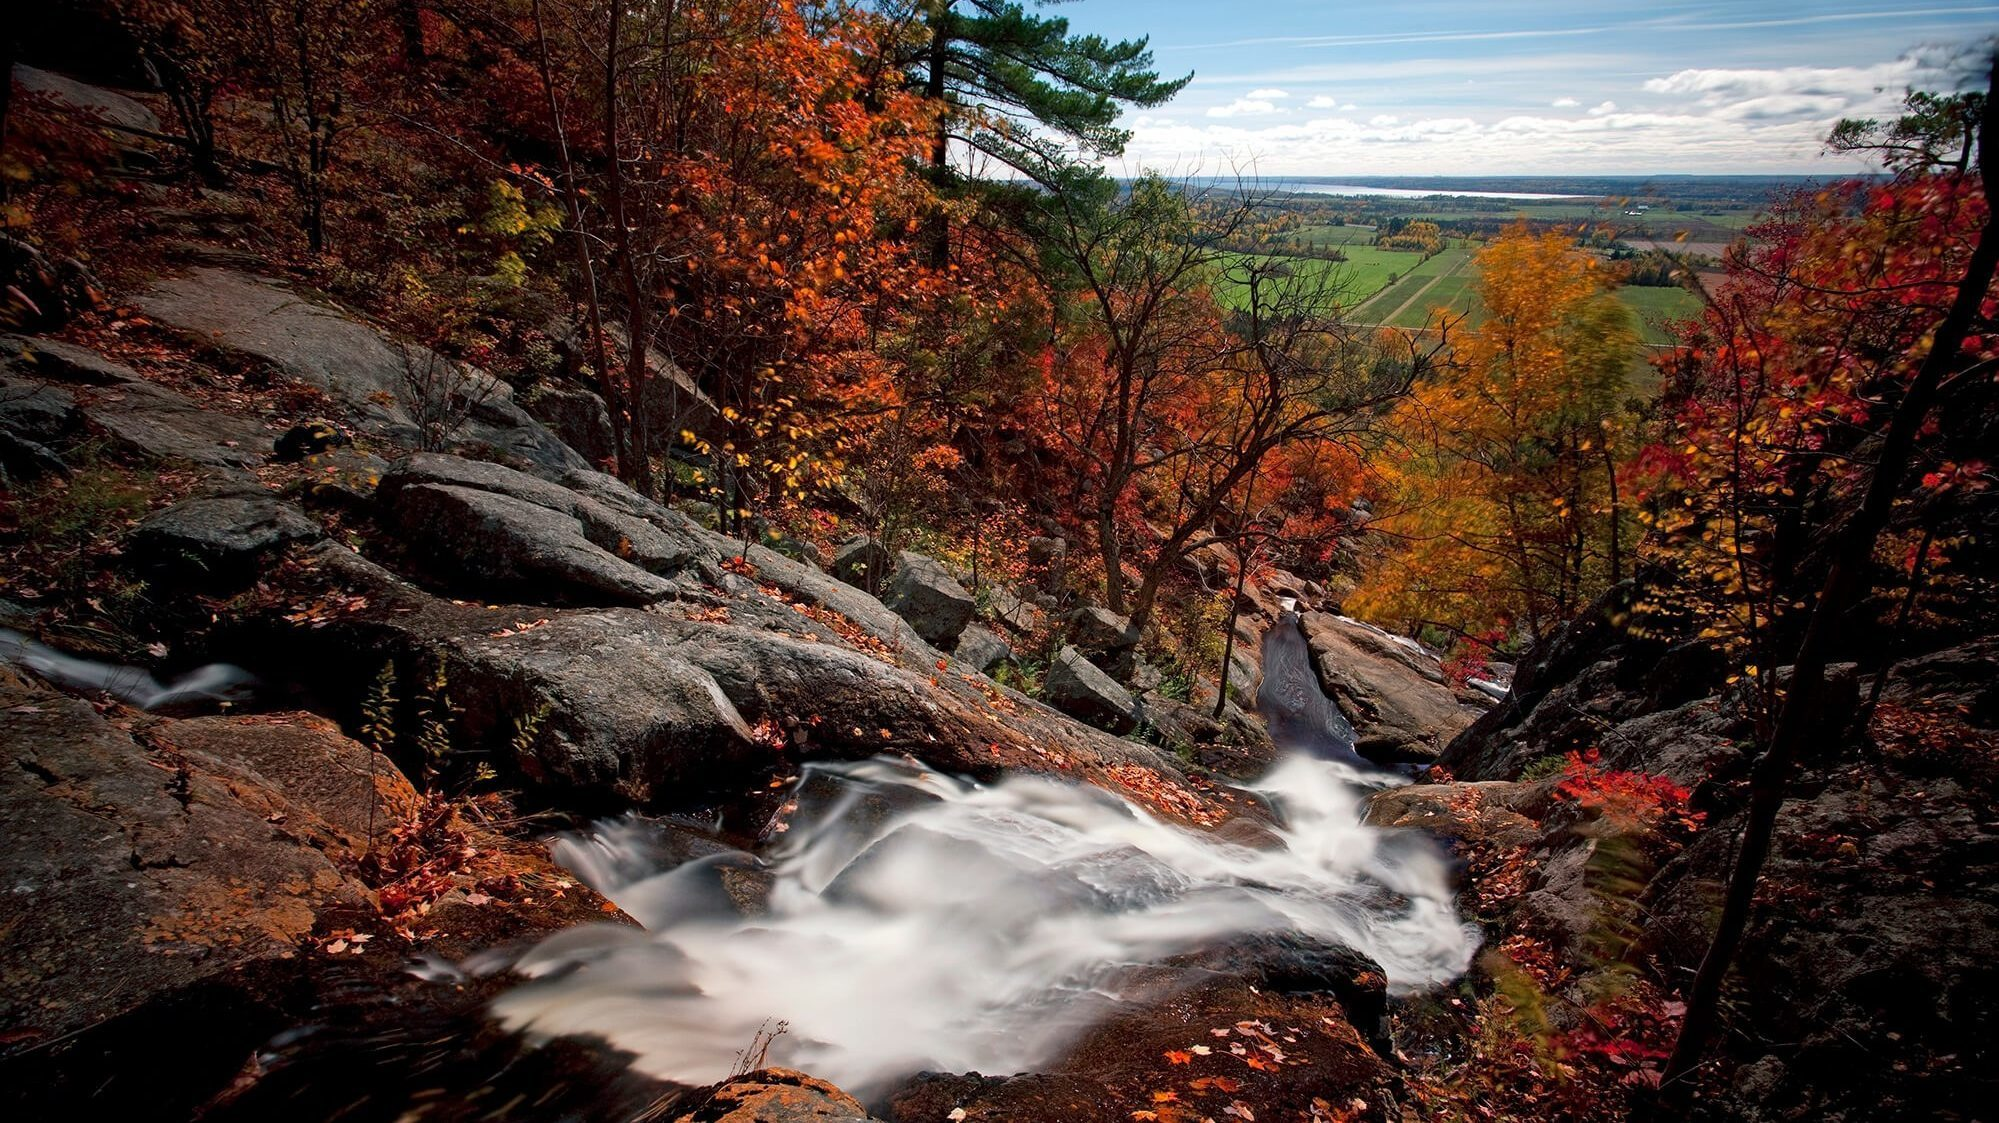 Luskville Falls in the fall, with red and orange foliage and fields in the background.